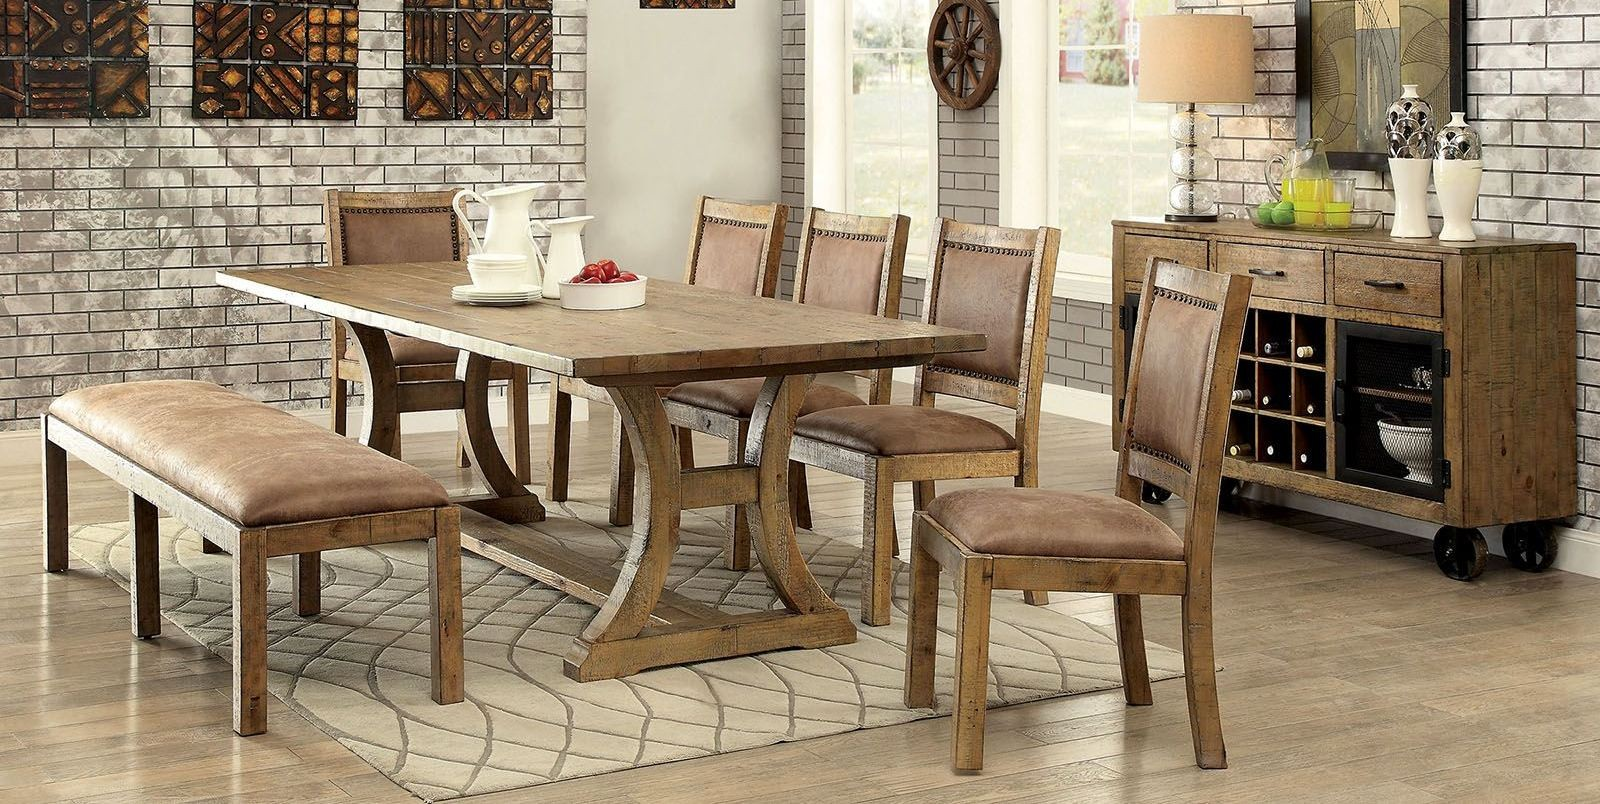 Farmhouse Dining Room Chairs Gianna Rustic Pine Extendable Rectangular Dining Room Set